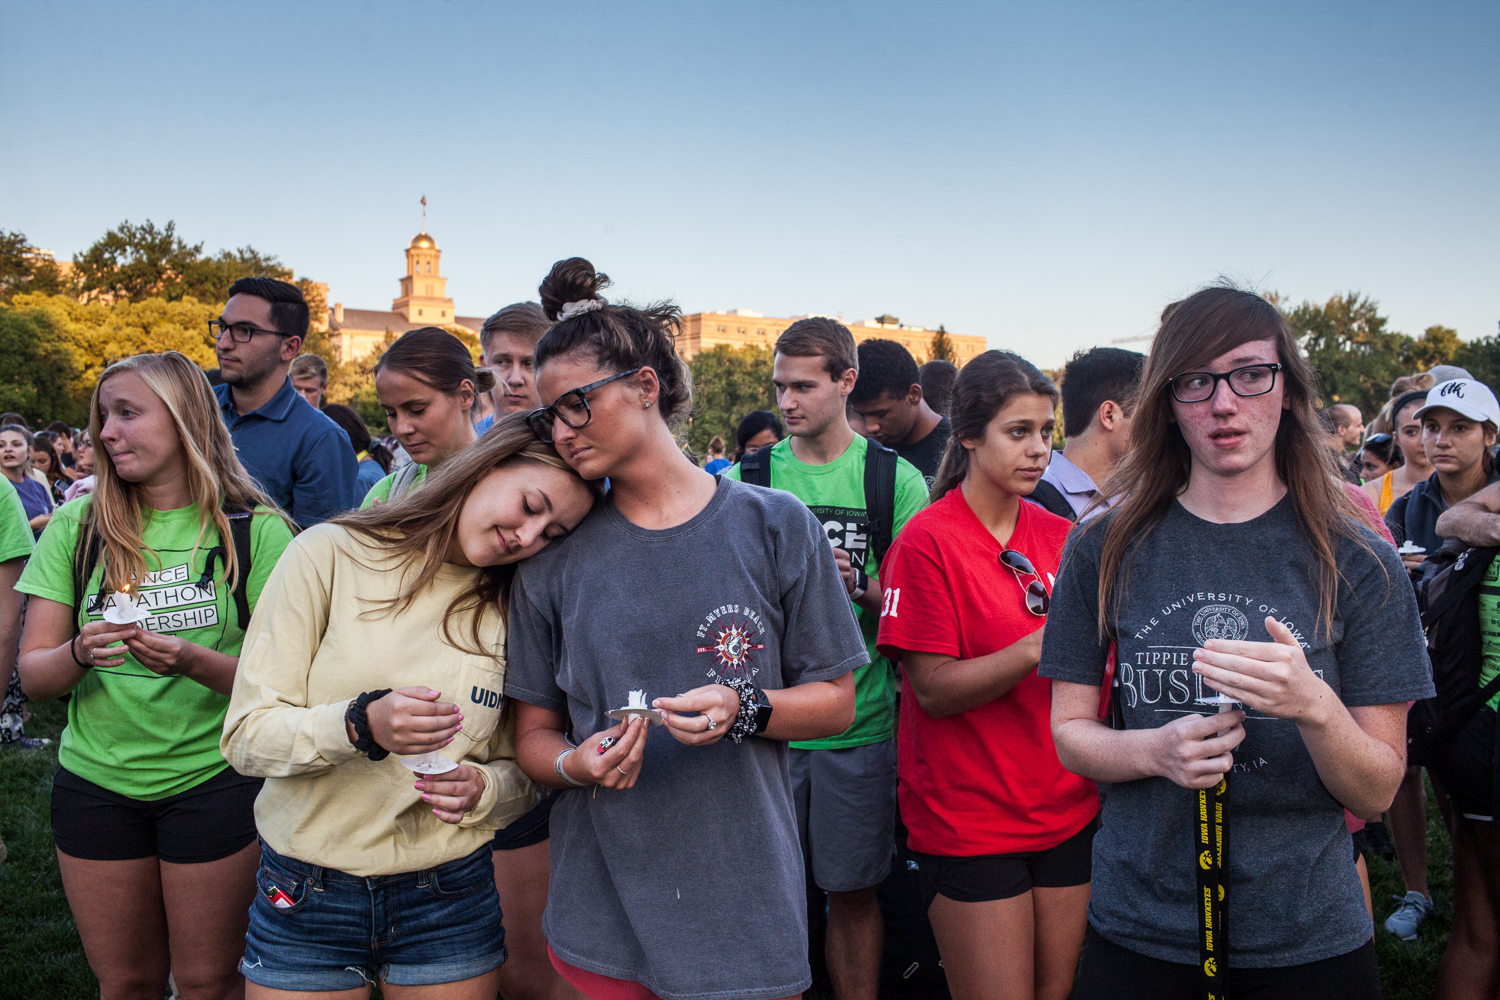 Community members gather to pay their respects during a vigil in memory of UI student Mollie Tibbetts at Hubbard Park on Wednesday, Aug. 22, 2018. Tibbetts went missing on July 18, in Brooklyn, Iowa.